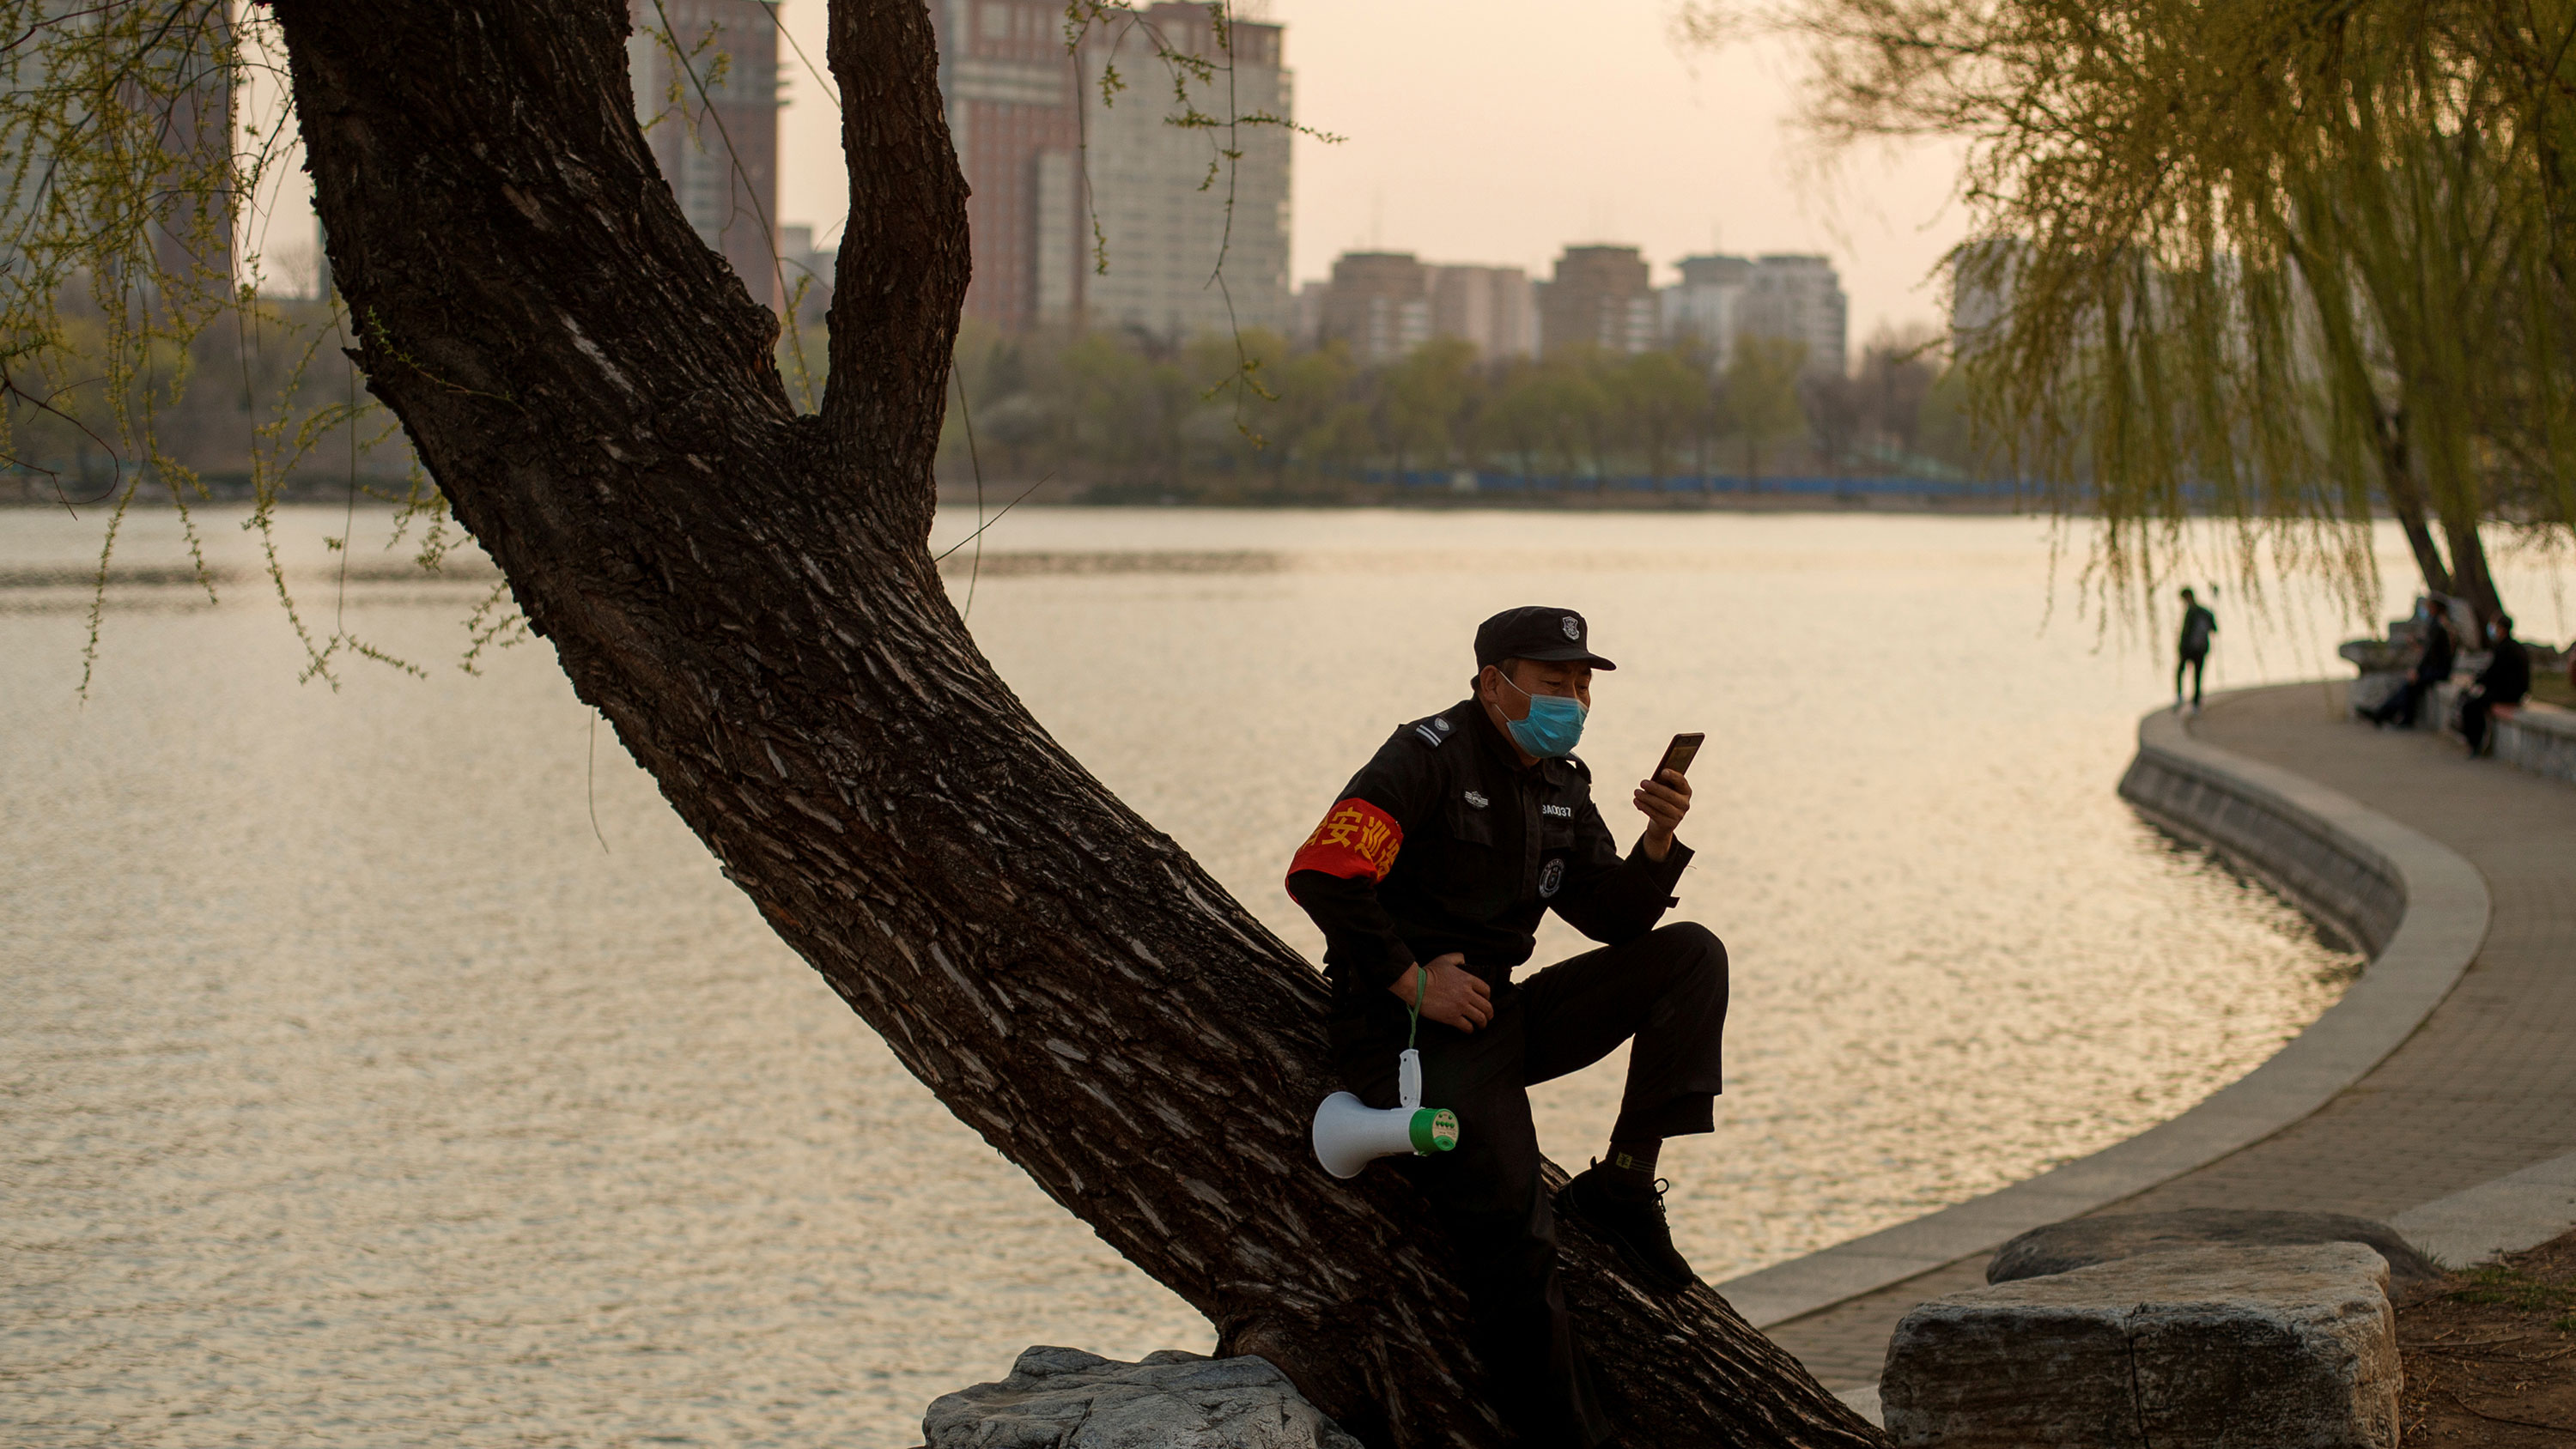 The photo shows a man sitting in a tree by a lake with a meandering walk. He is looking at his phone.